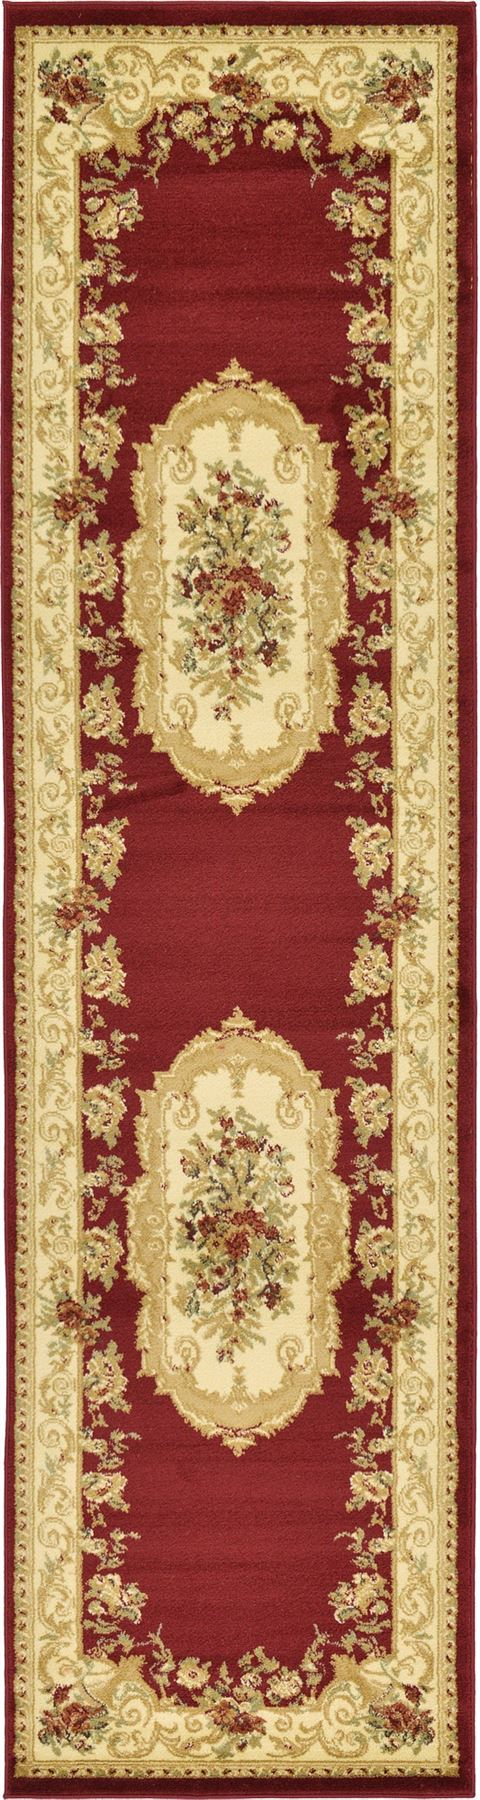 Oriental-Large-Area-Rug-Square-Traditional-Country-Round-Carpet-Medallion-Small thumbnail 51